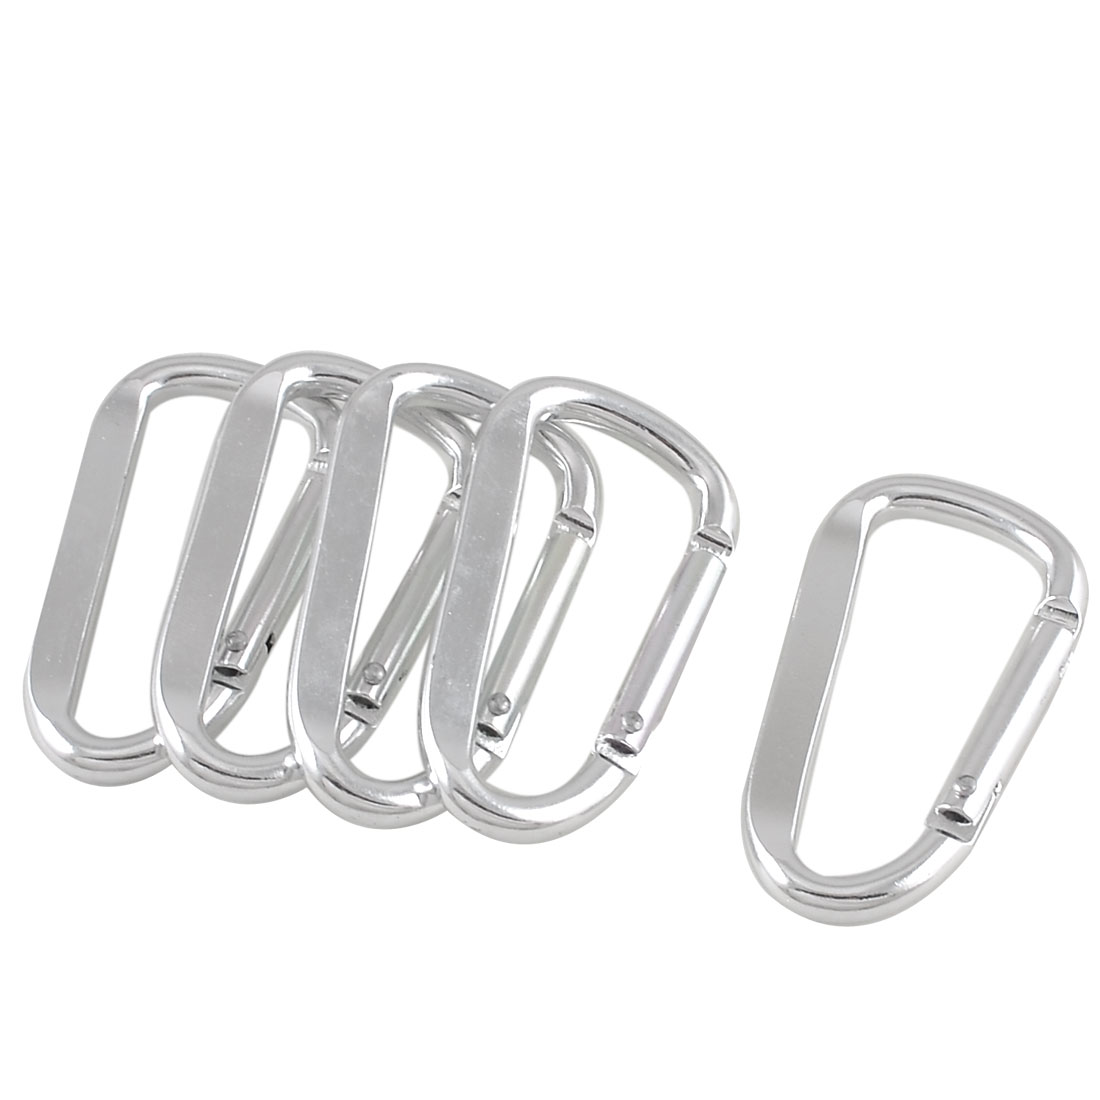 5 Pcs Silver Tone D Shaped Aluminum Alloy Carabiner Hook Keychain